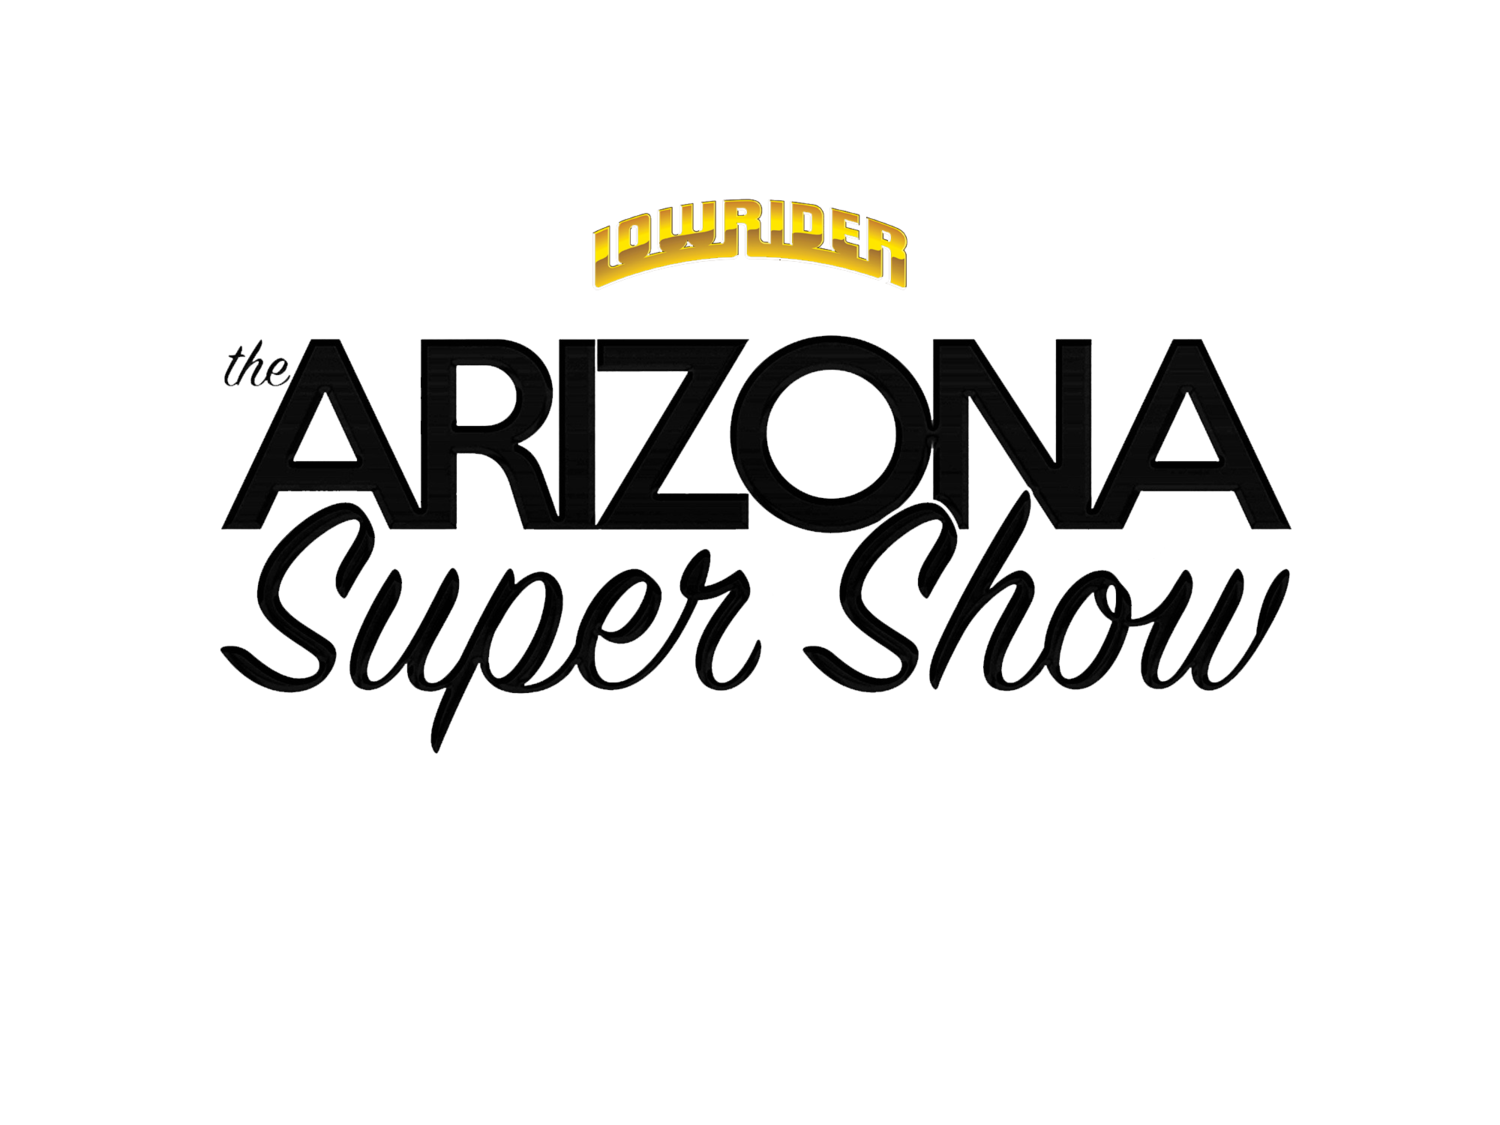 vehicle registration lowrider arizona super show